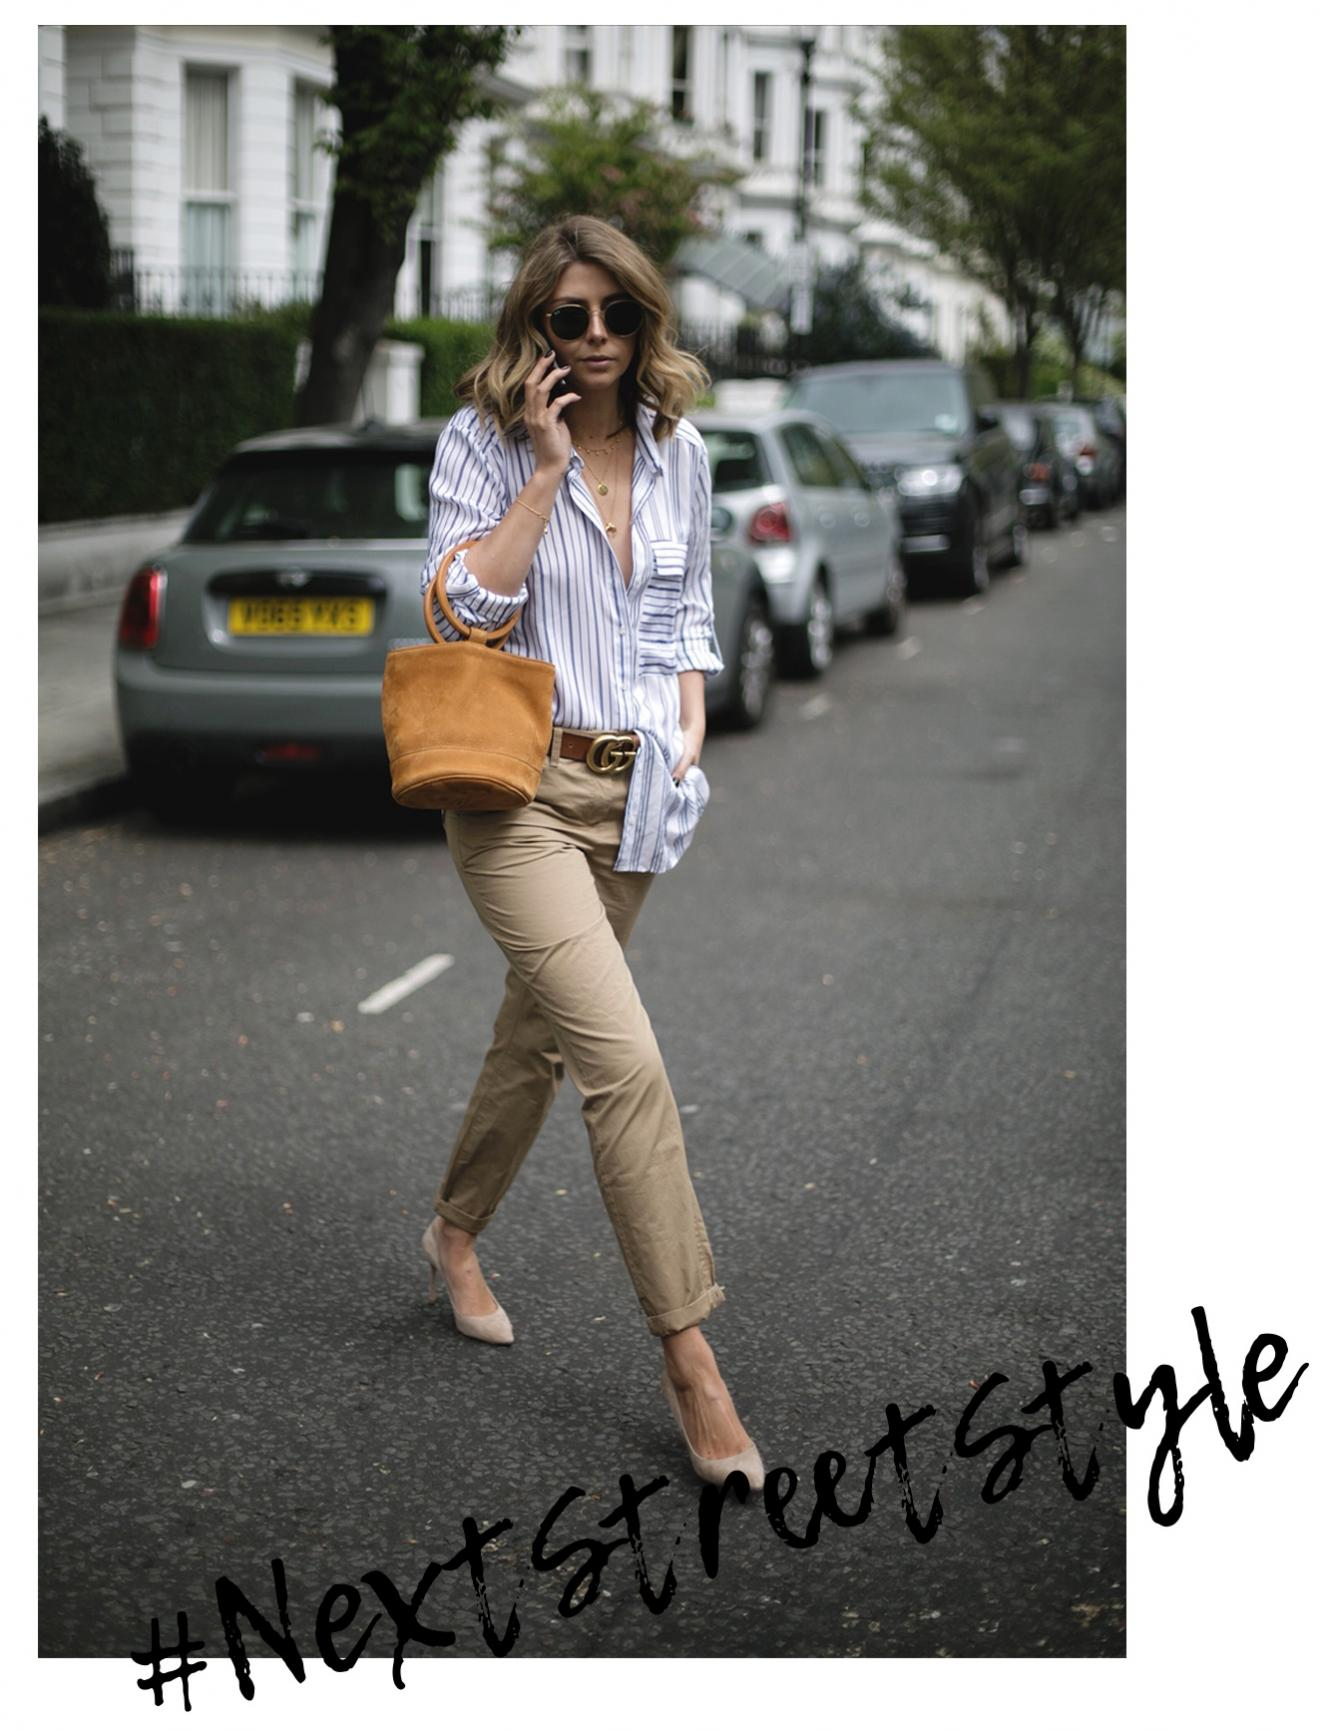 Emma Hill wears stripe shirt, tan suede Simon Miller bag, chinos, suede pumps, street style photography